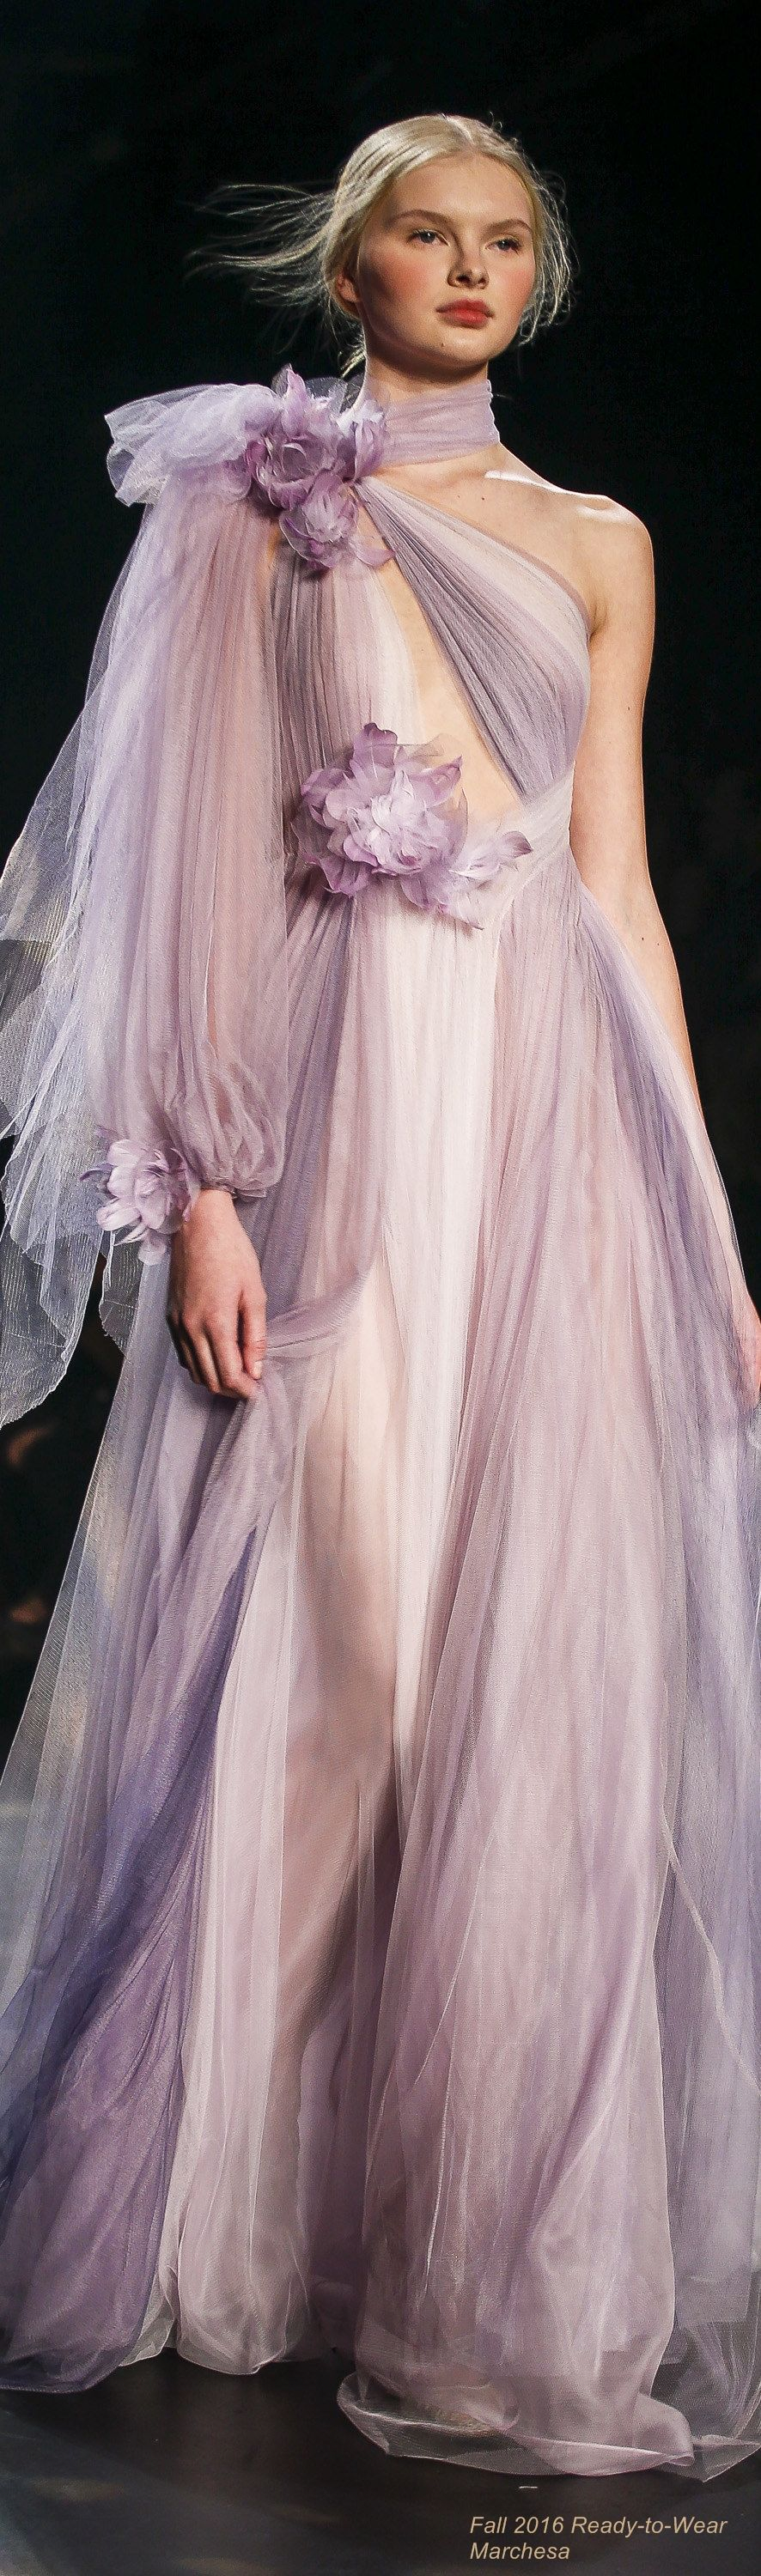 Fall 2016 Ready-to-Wear Marchesa | Outstanding Outfits | Pinterest ...